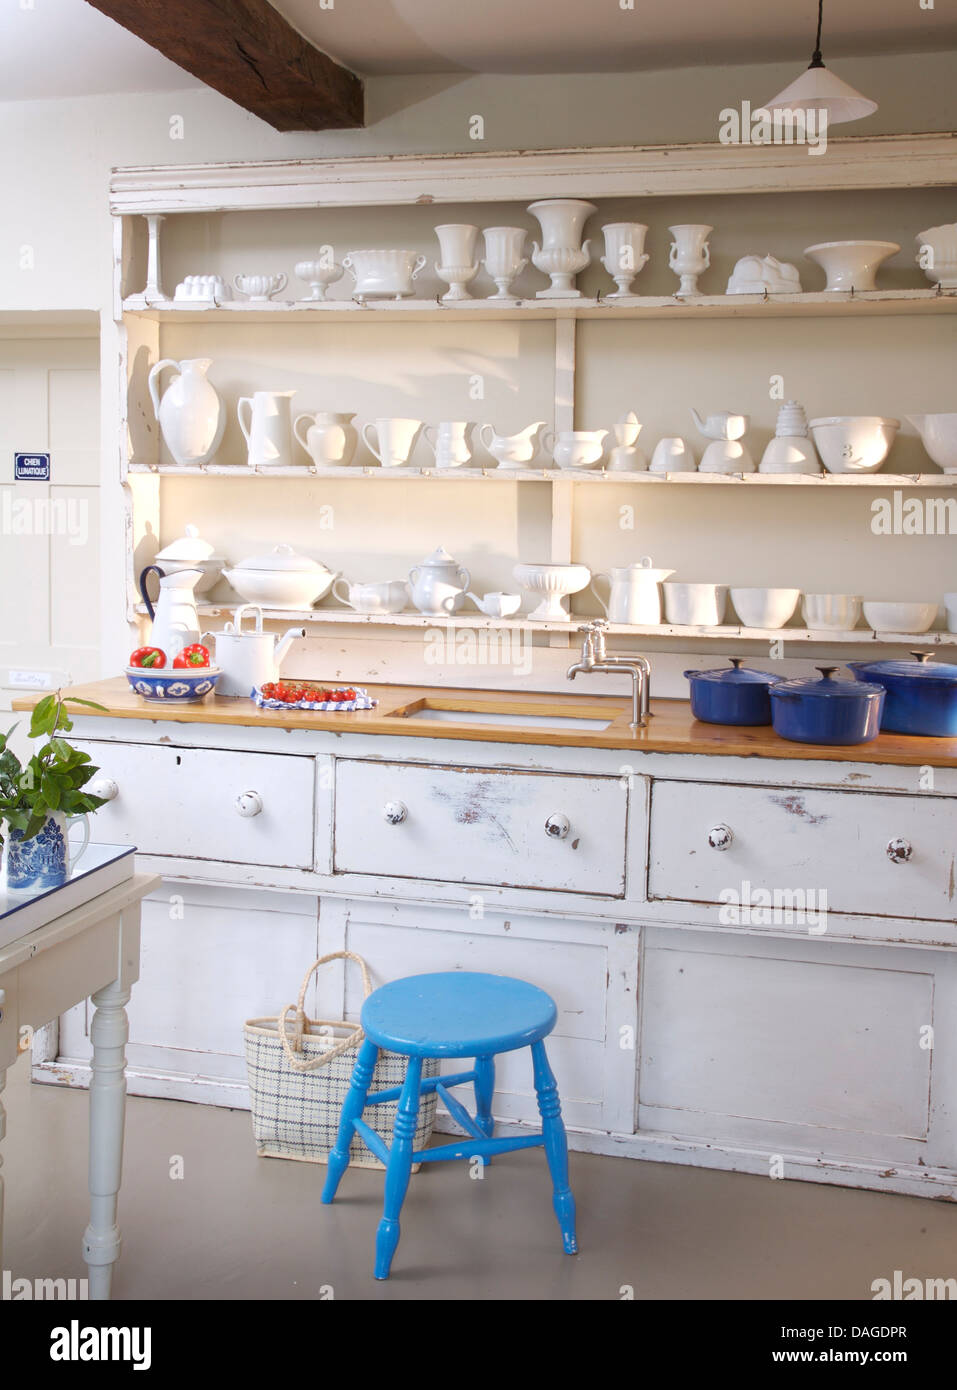 White china displayed on shelves above sink in white built in dresser in cottage kitchen with